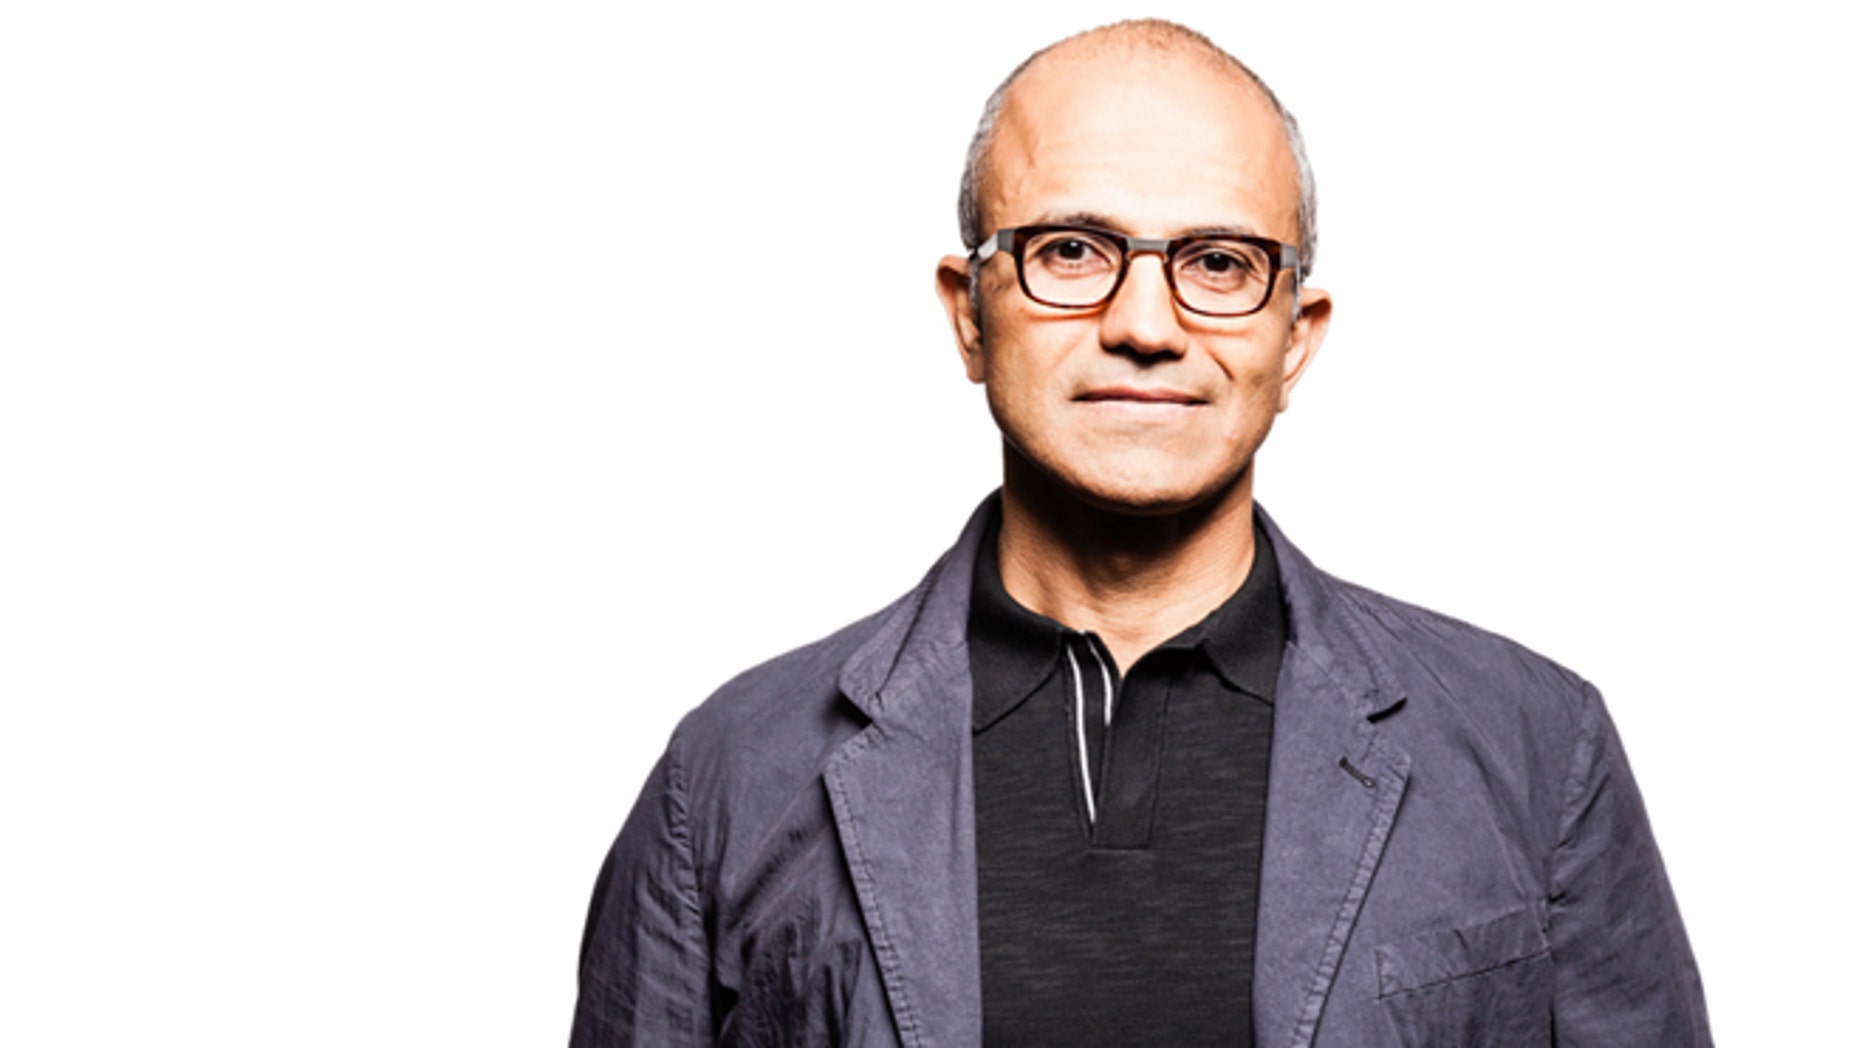 Satya Nadella is executive vice president of Microsoft's Cloud and Enterprise group, responsible for building and running the companys computing platforms, developer tools and cloud services.